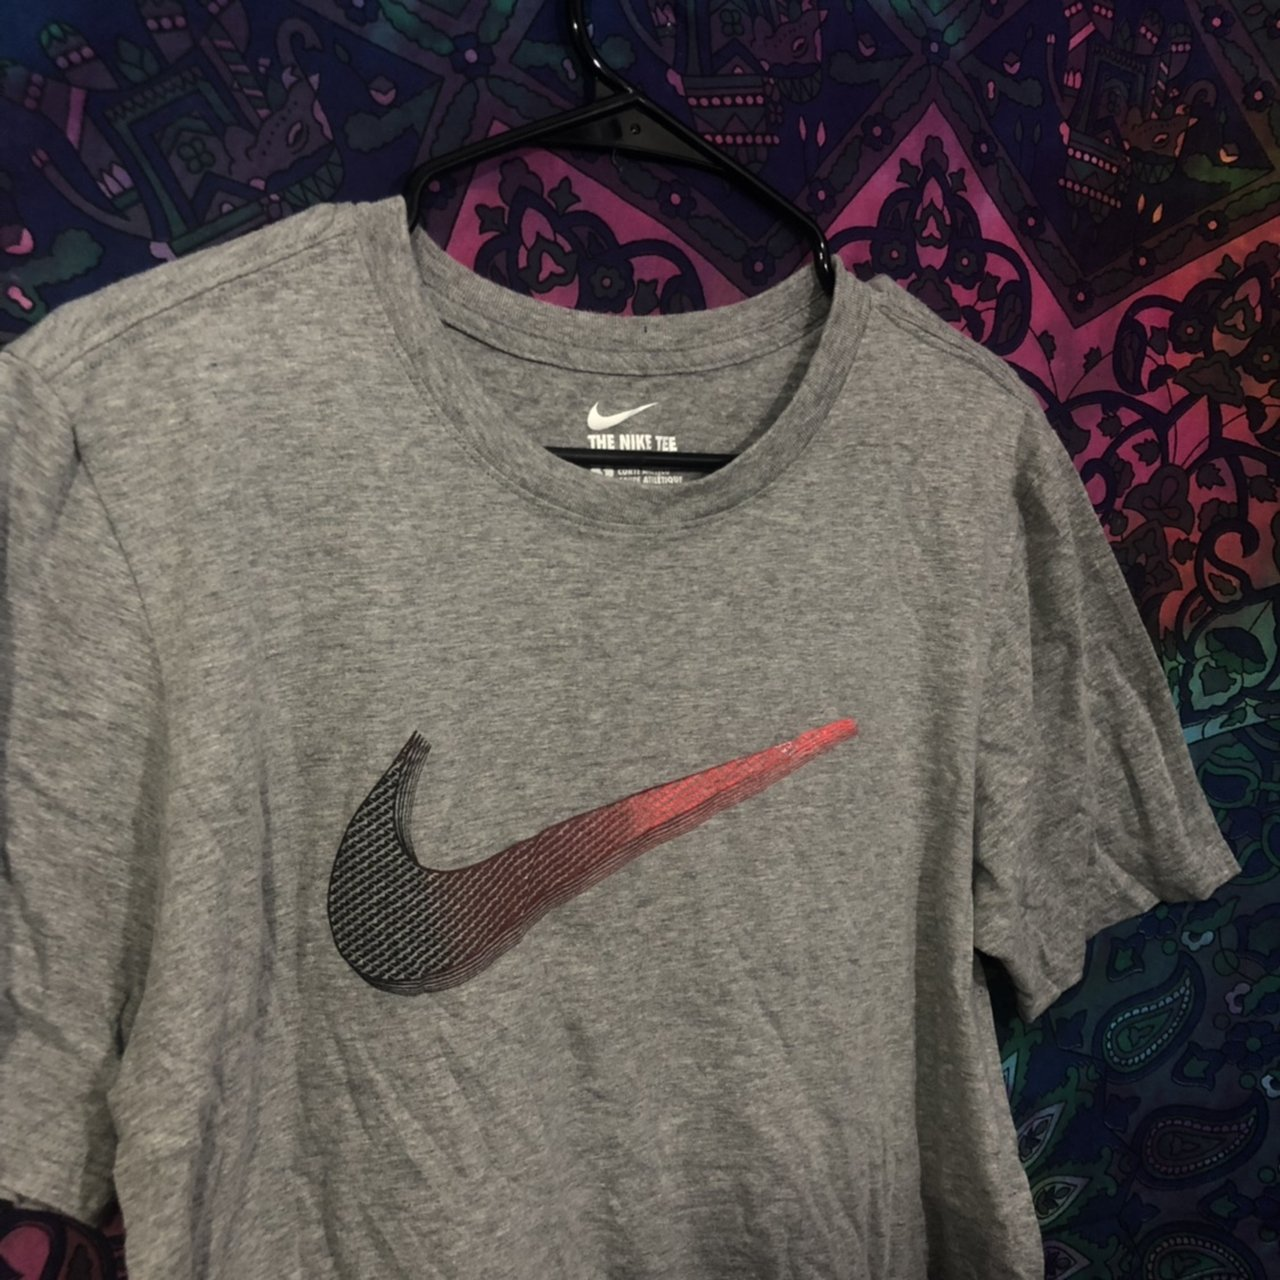 cdd94f237 Grey Ombre Nike Graphic T-Shirt! +Size